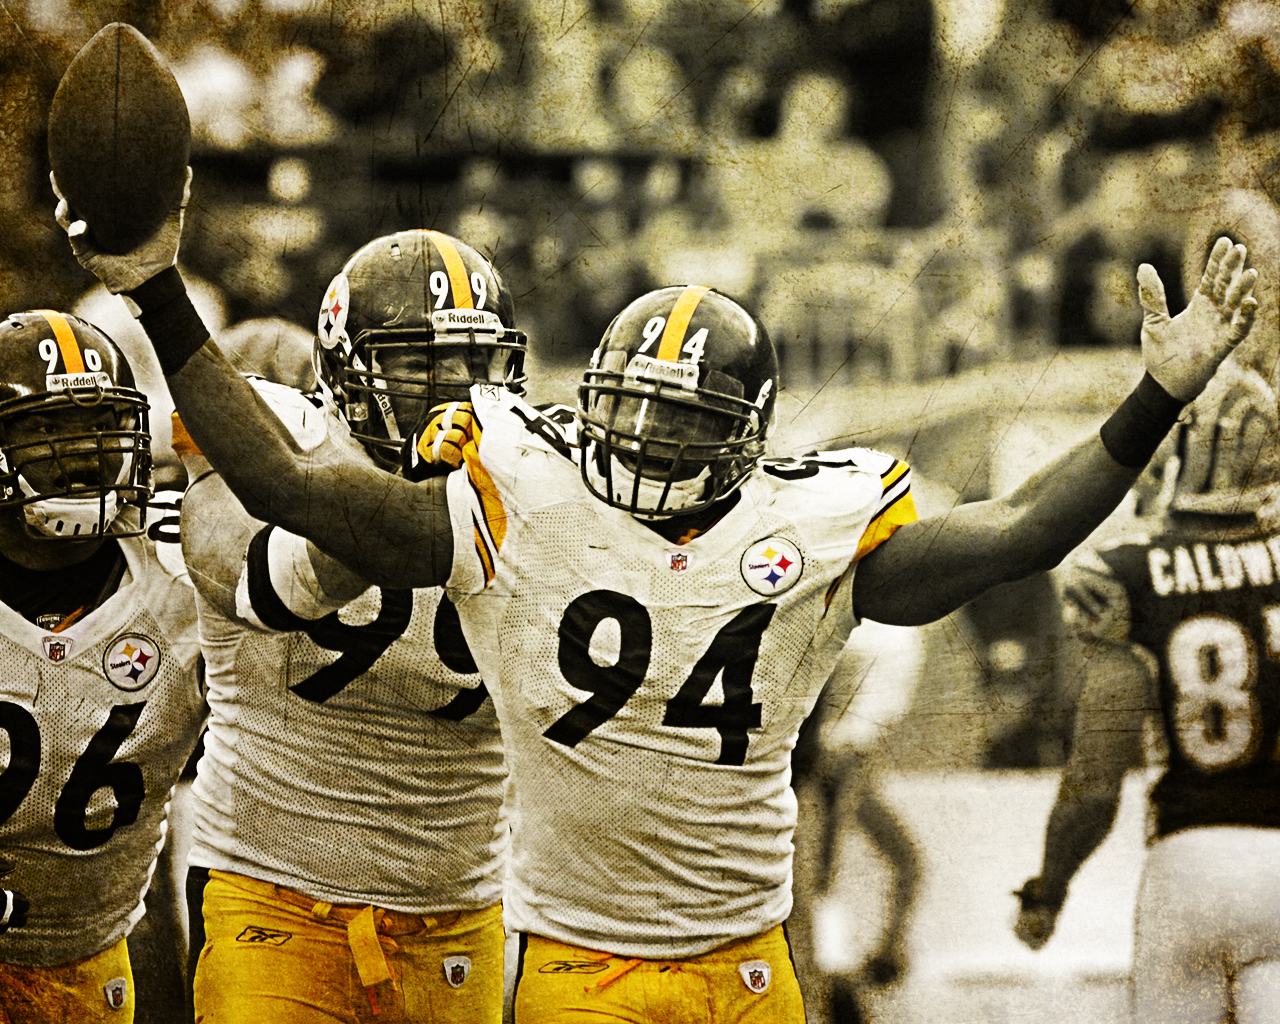 continue reading antonio brown wallpaper posted by psf on monday 1280x1024